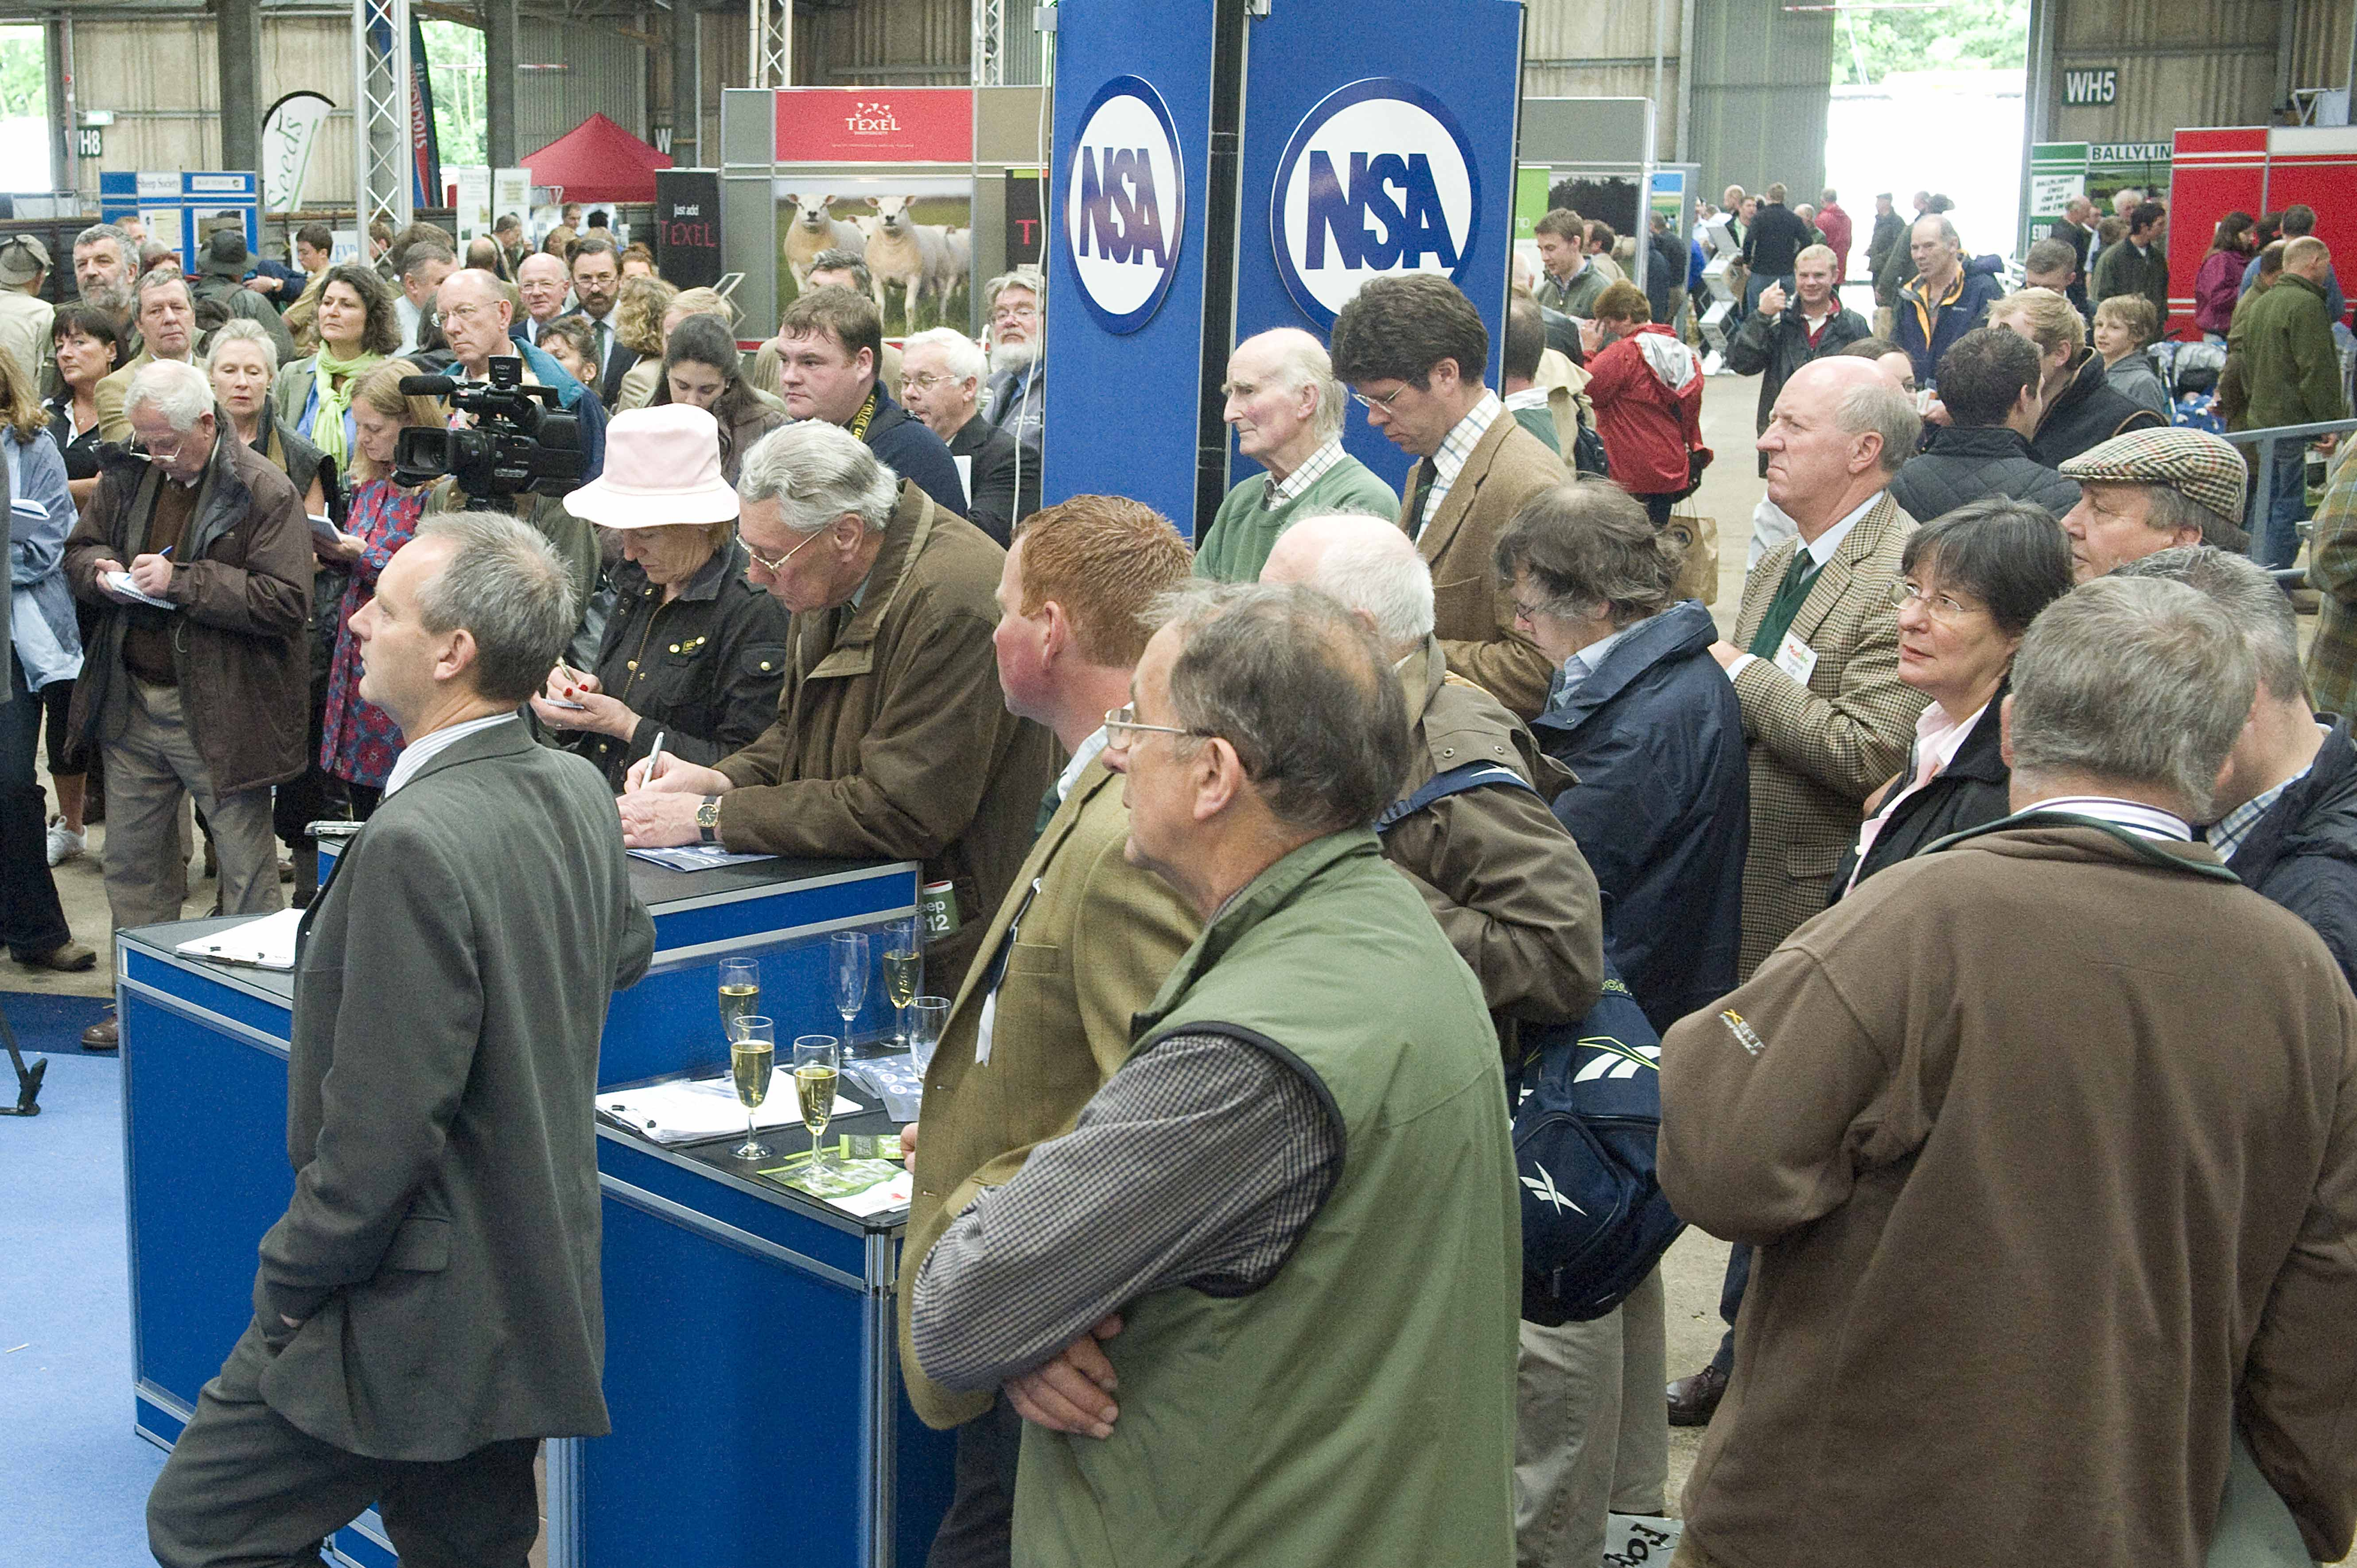 2012 NSA Sheep event visitor numbers were in excess of 11,000